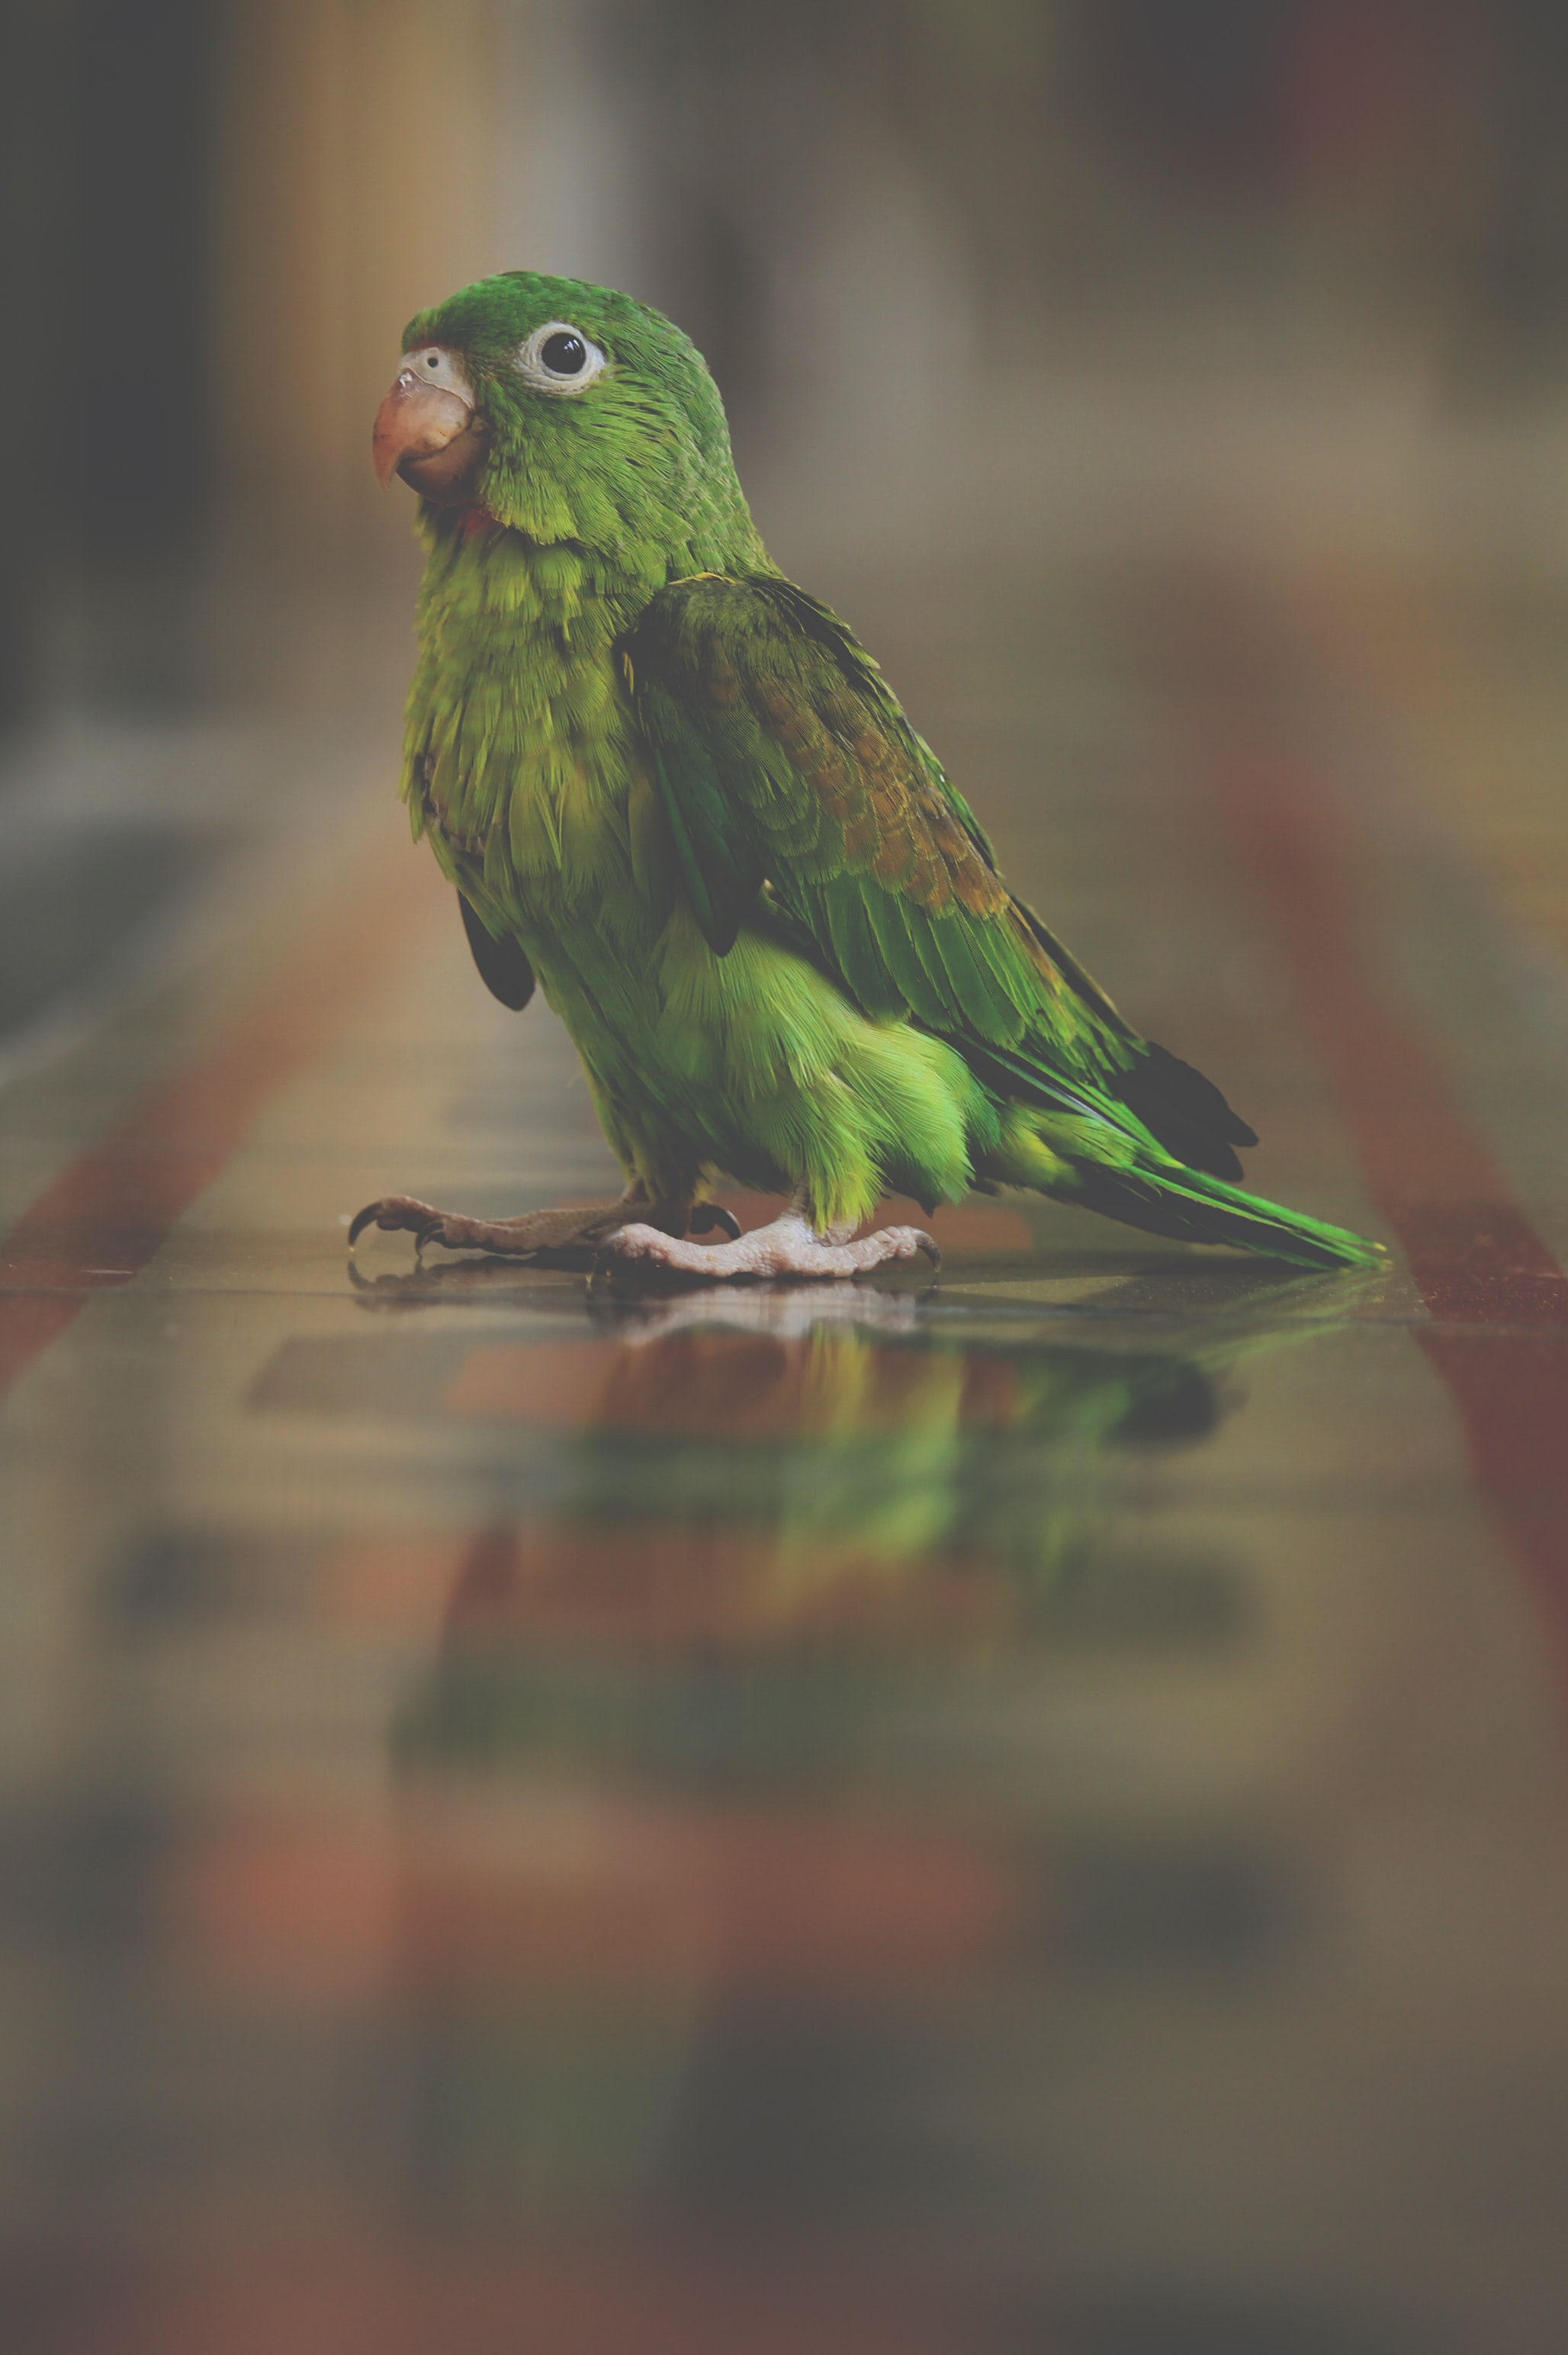 Green parrot walking on a reflective painted marble floor